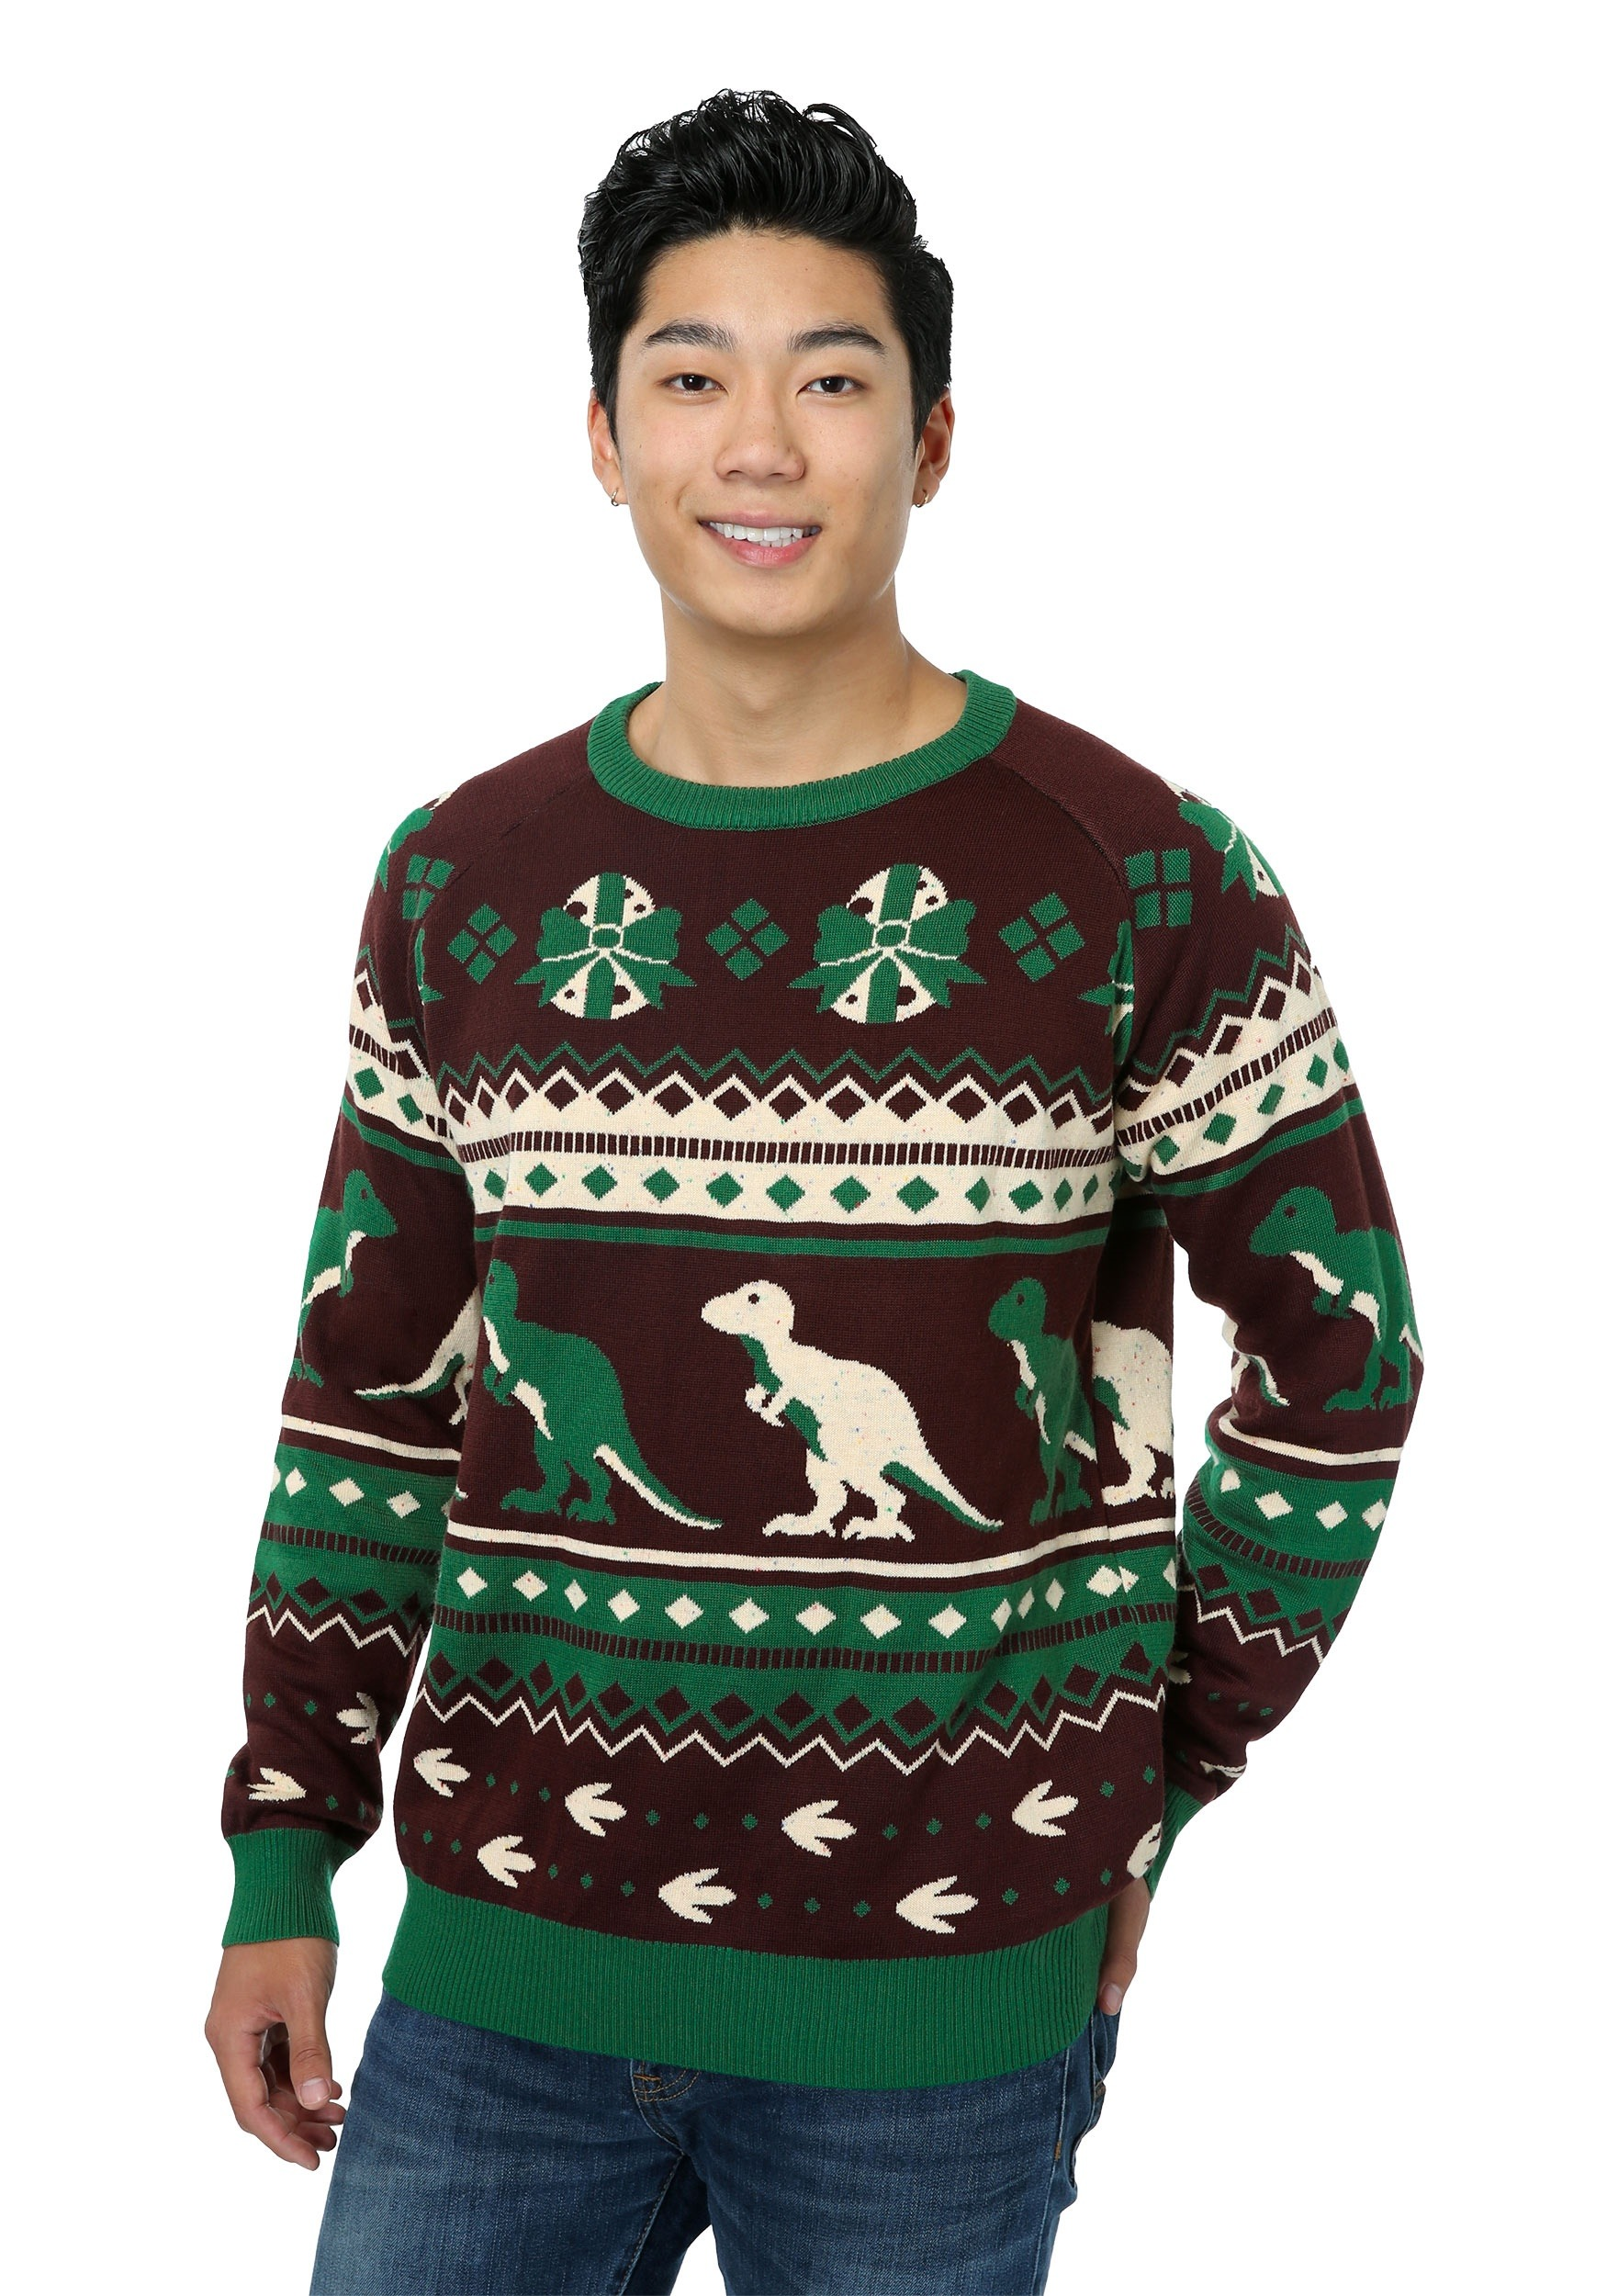 Ugly Christmas Sweaters-Sweatshirts Get ugly with our Christmas sweaters and sweatshirts! You haven't lived 'till you checked out our Ugly Christmas Sweatshirts -- all the glory of a grandma-style ugly Christmas sweater, half the price, twice the laughs, and with .